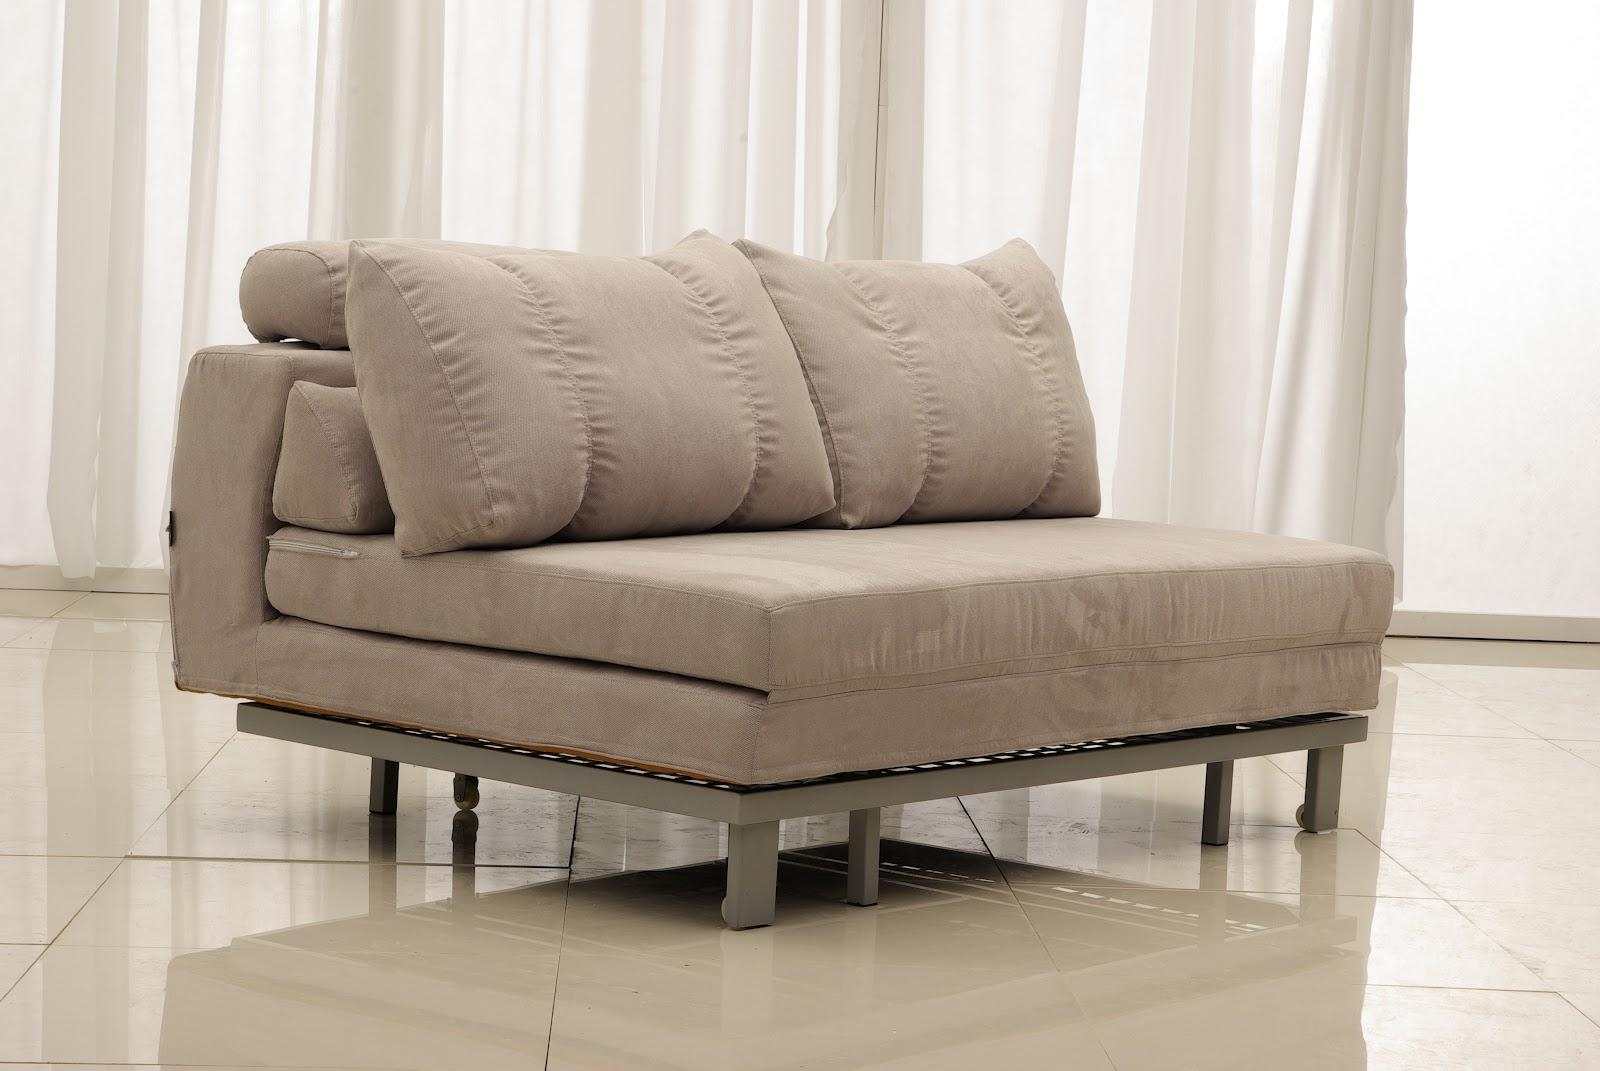 Beautiful Most Comfortable Sleeper Sofa 2017 80 With Additional For Sleeper Sofas San Diego (Image 2 of 20)